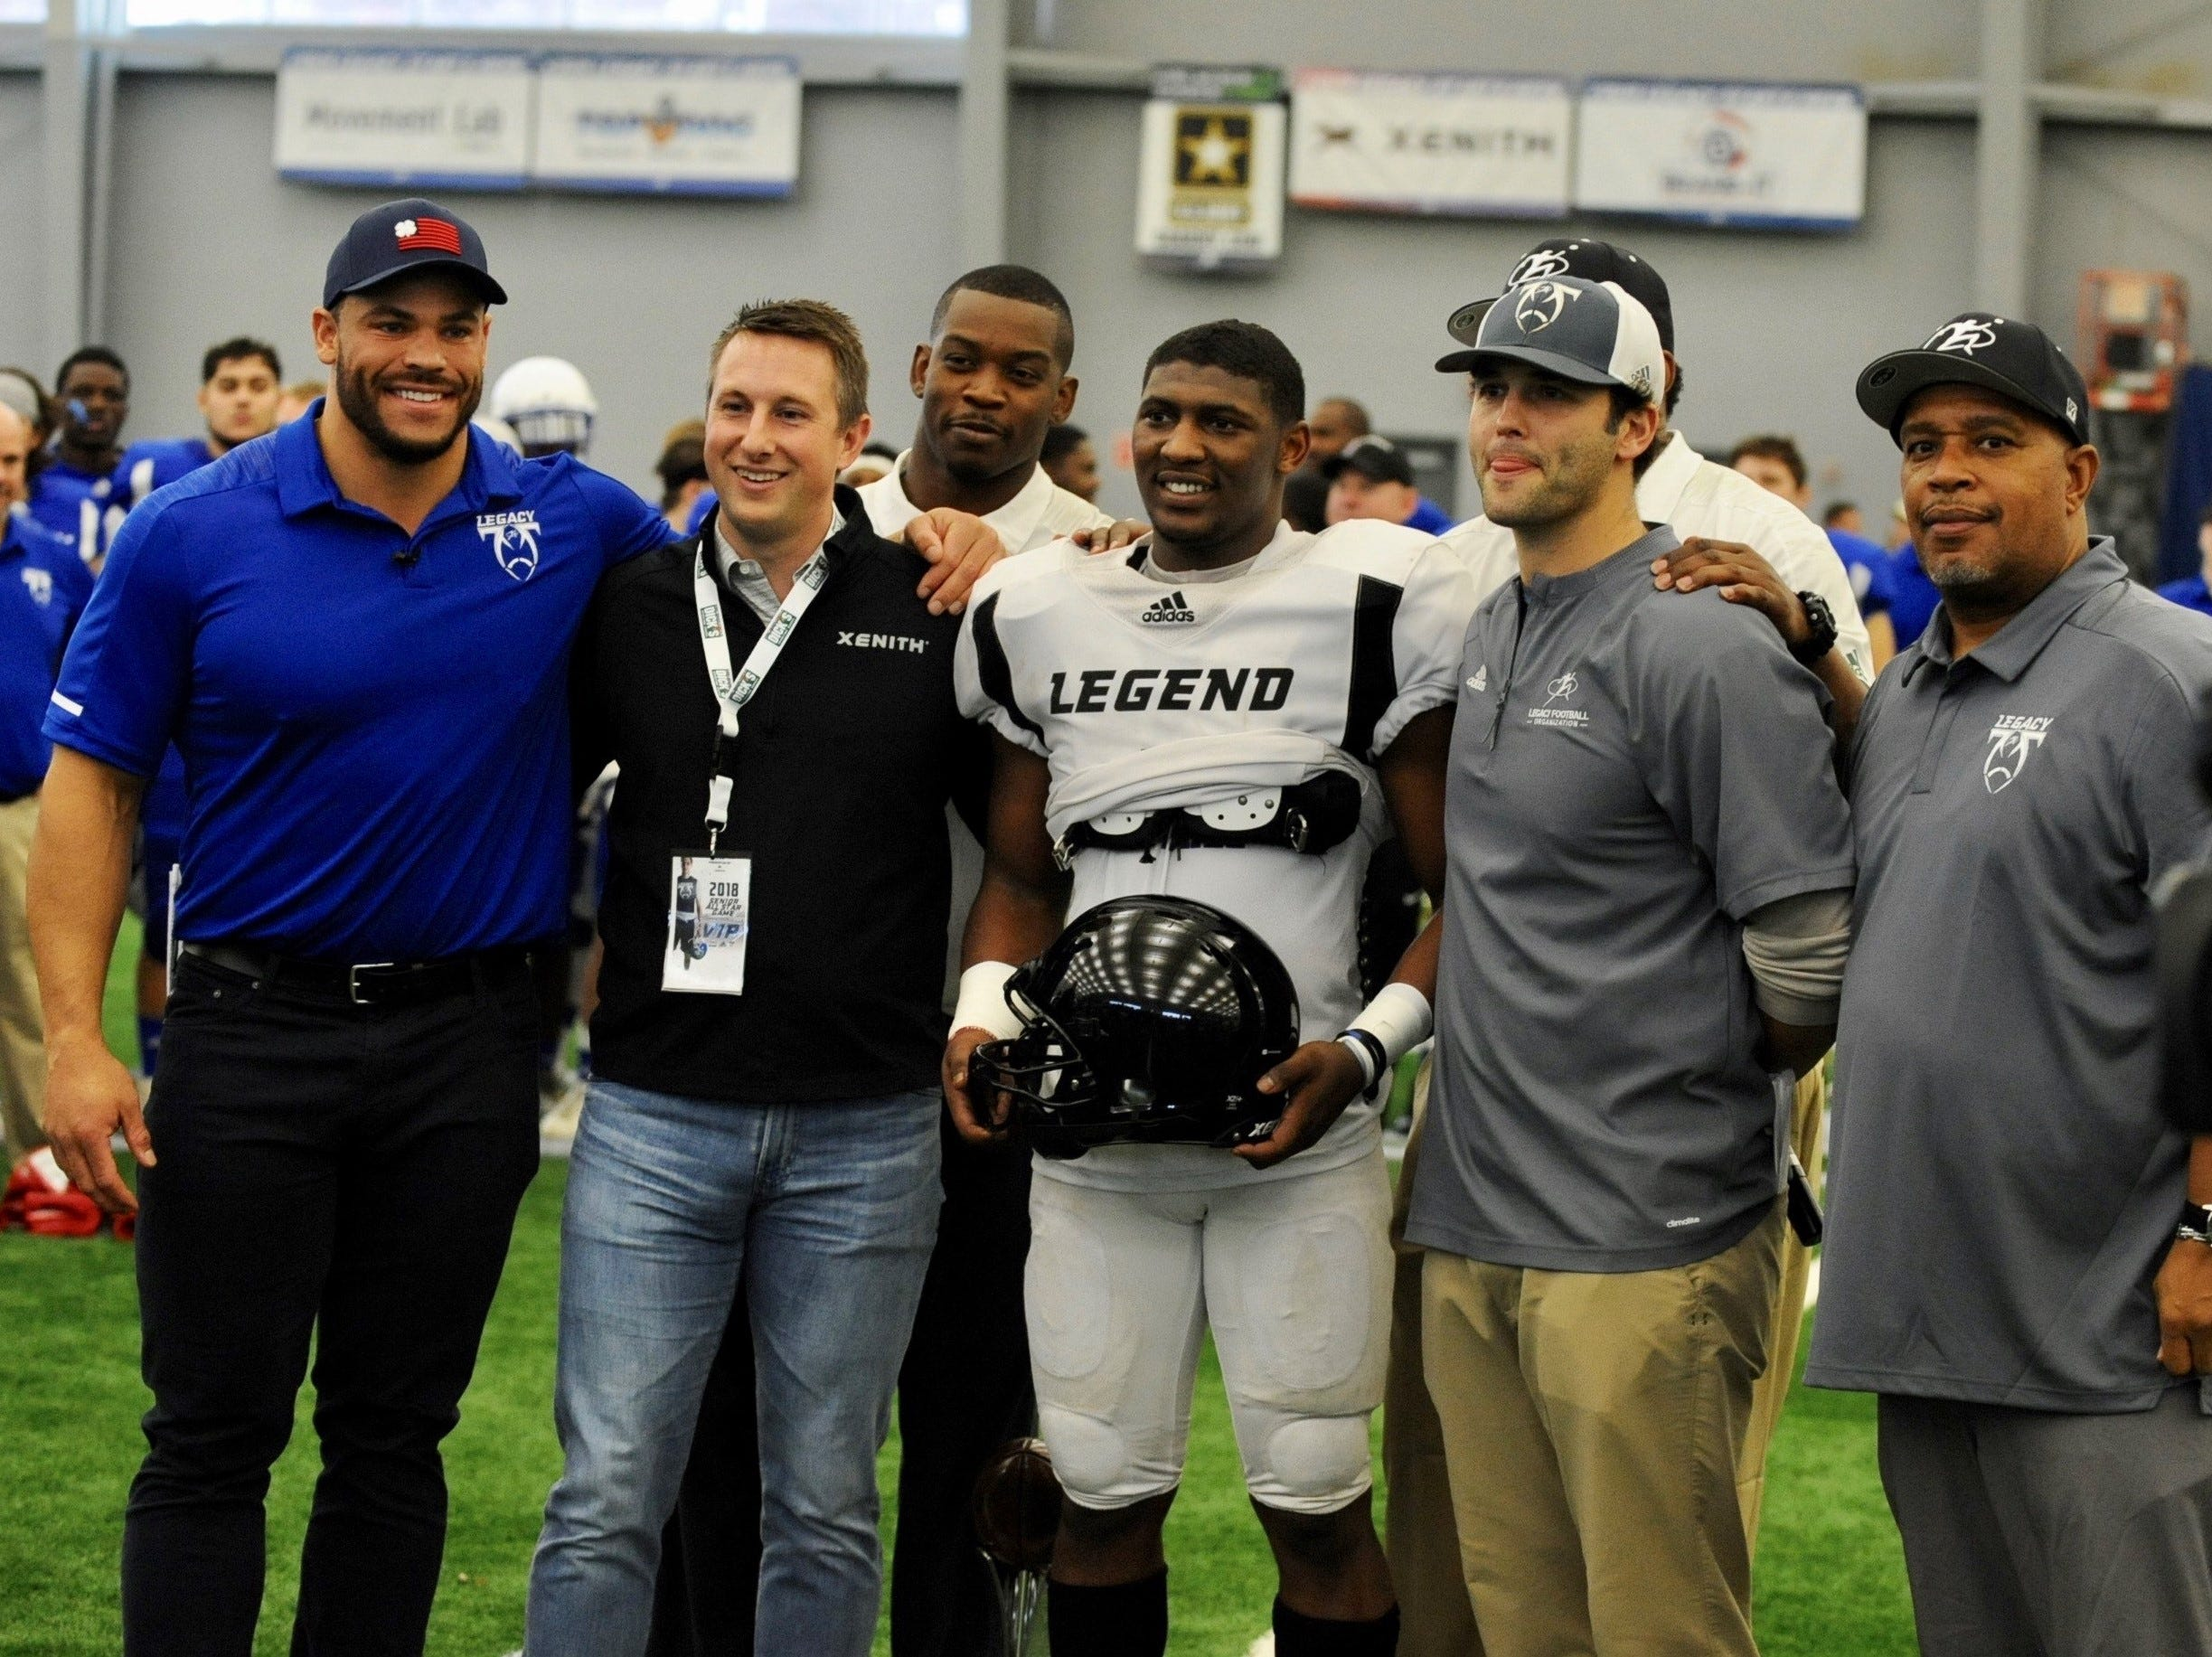 Team Legends MVP Noah Smith (Lansing Everett), poses after being presented the honor. At far left is Mike Martin, head coach of Team Legacy and formerly of the University of Michigan and NFL. Third from left is Team Legends head coach and former Michigan State and NFL player Greg Jones.